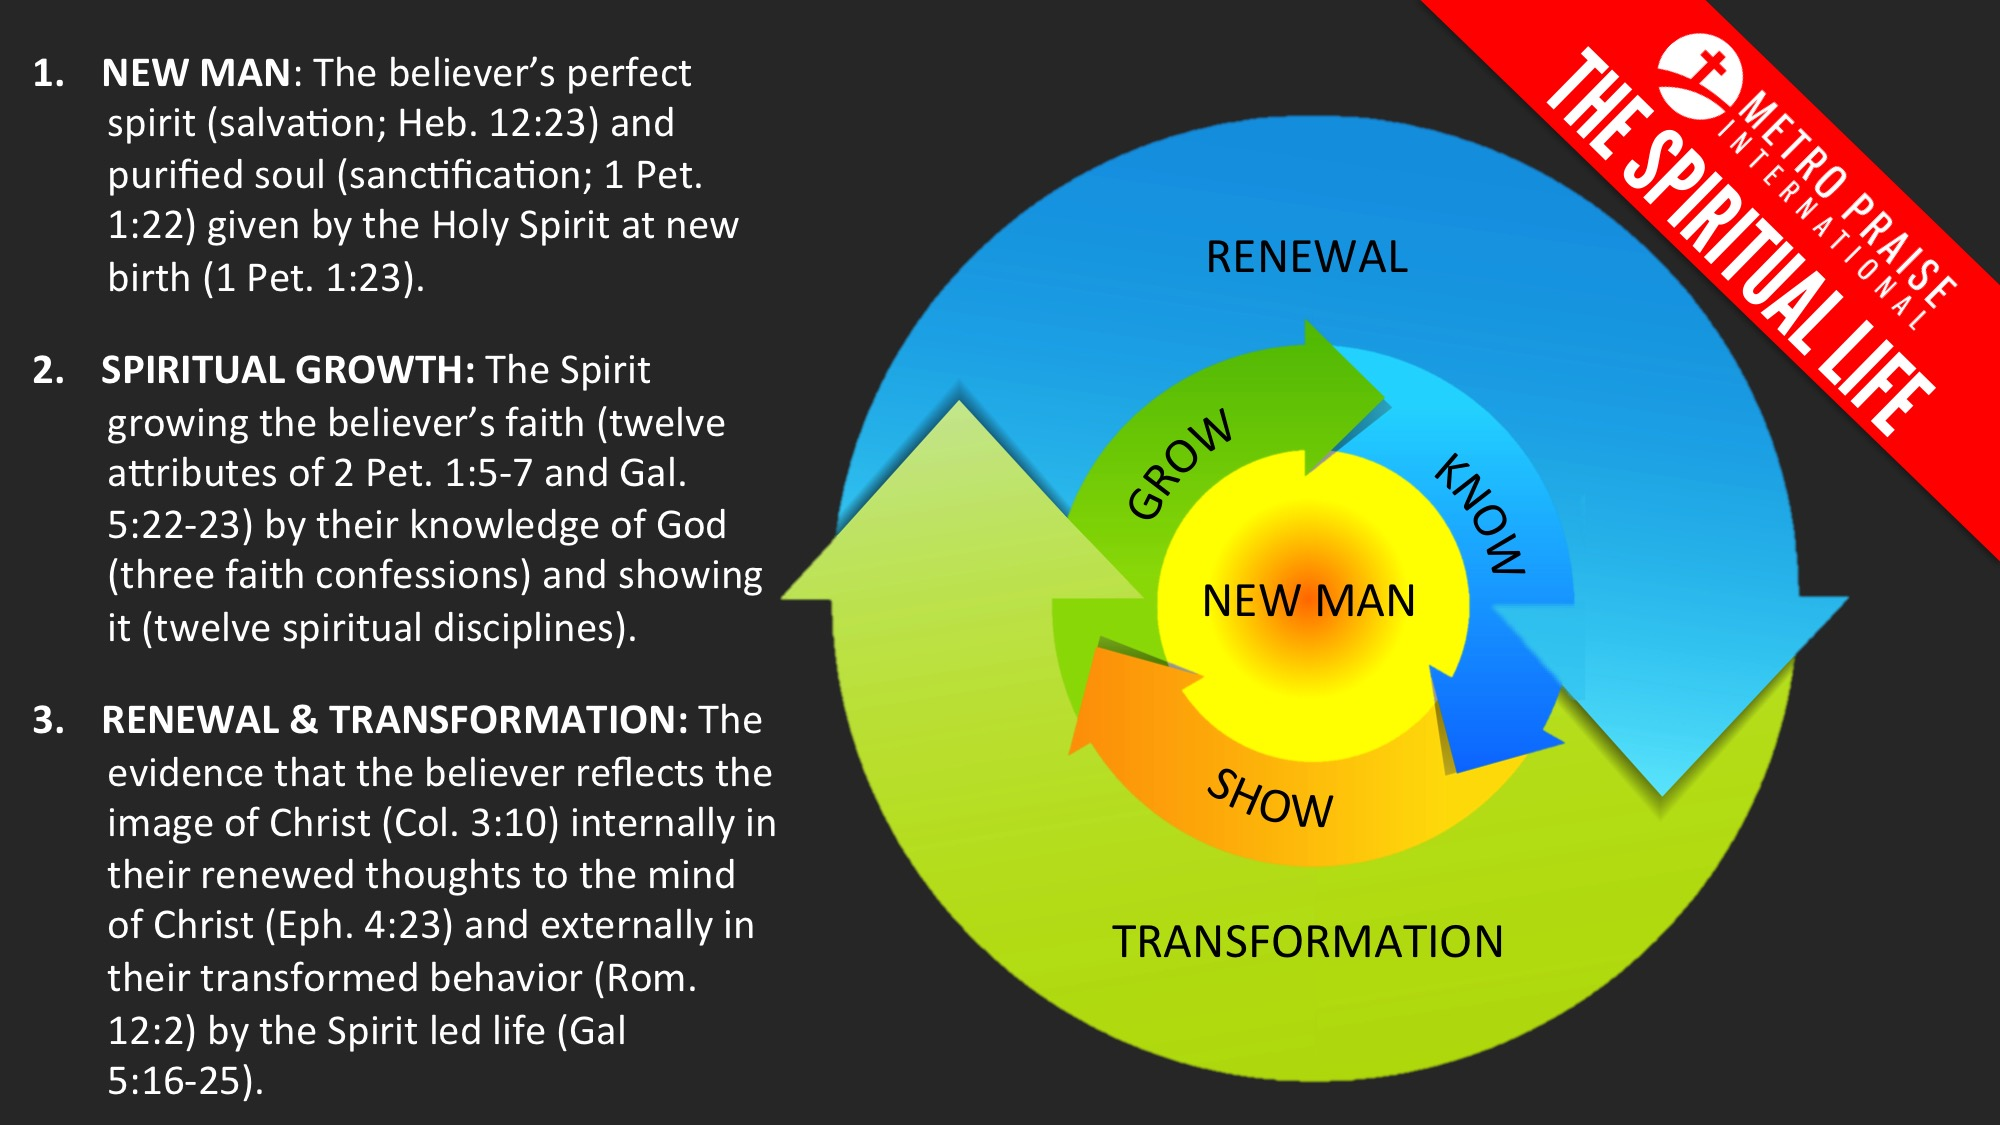 hight resolution of renewal and transformation come naturally by the holy spirit as the believer grows in the image of christ